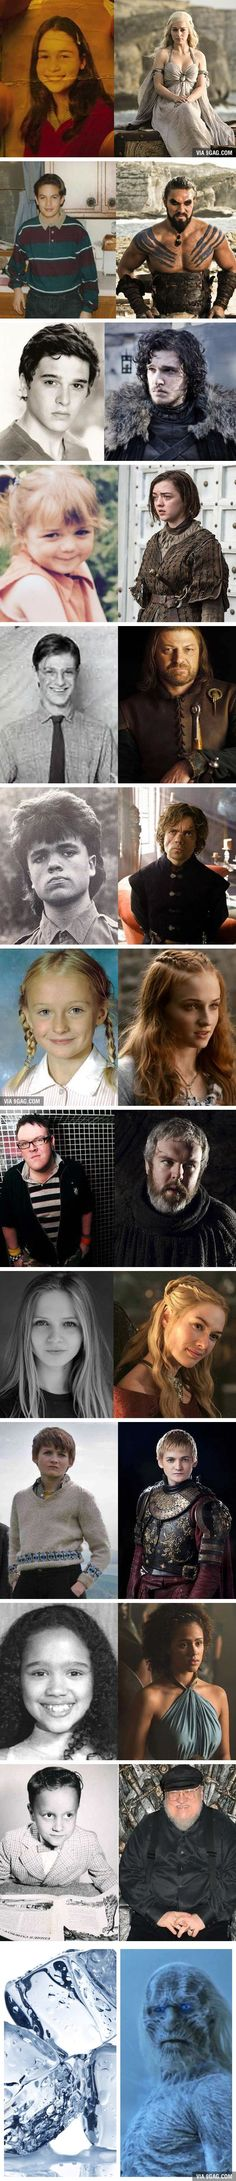 Childhood photos of the cast of 'Game of Thrones'